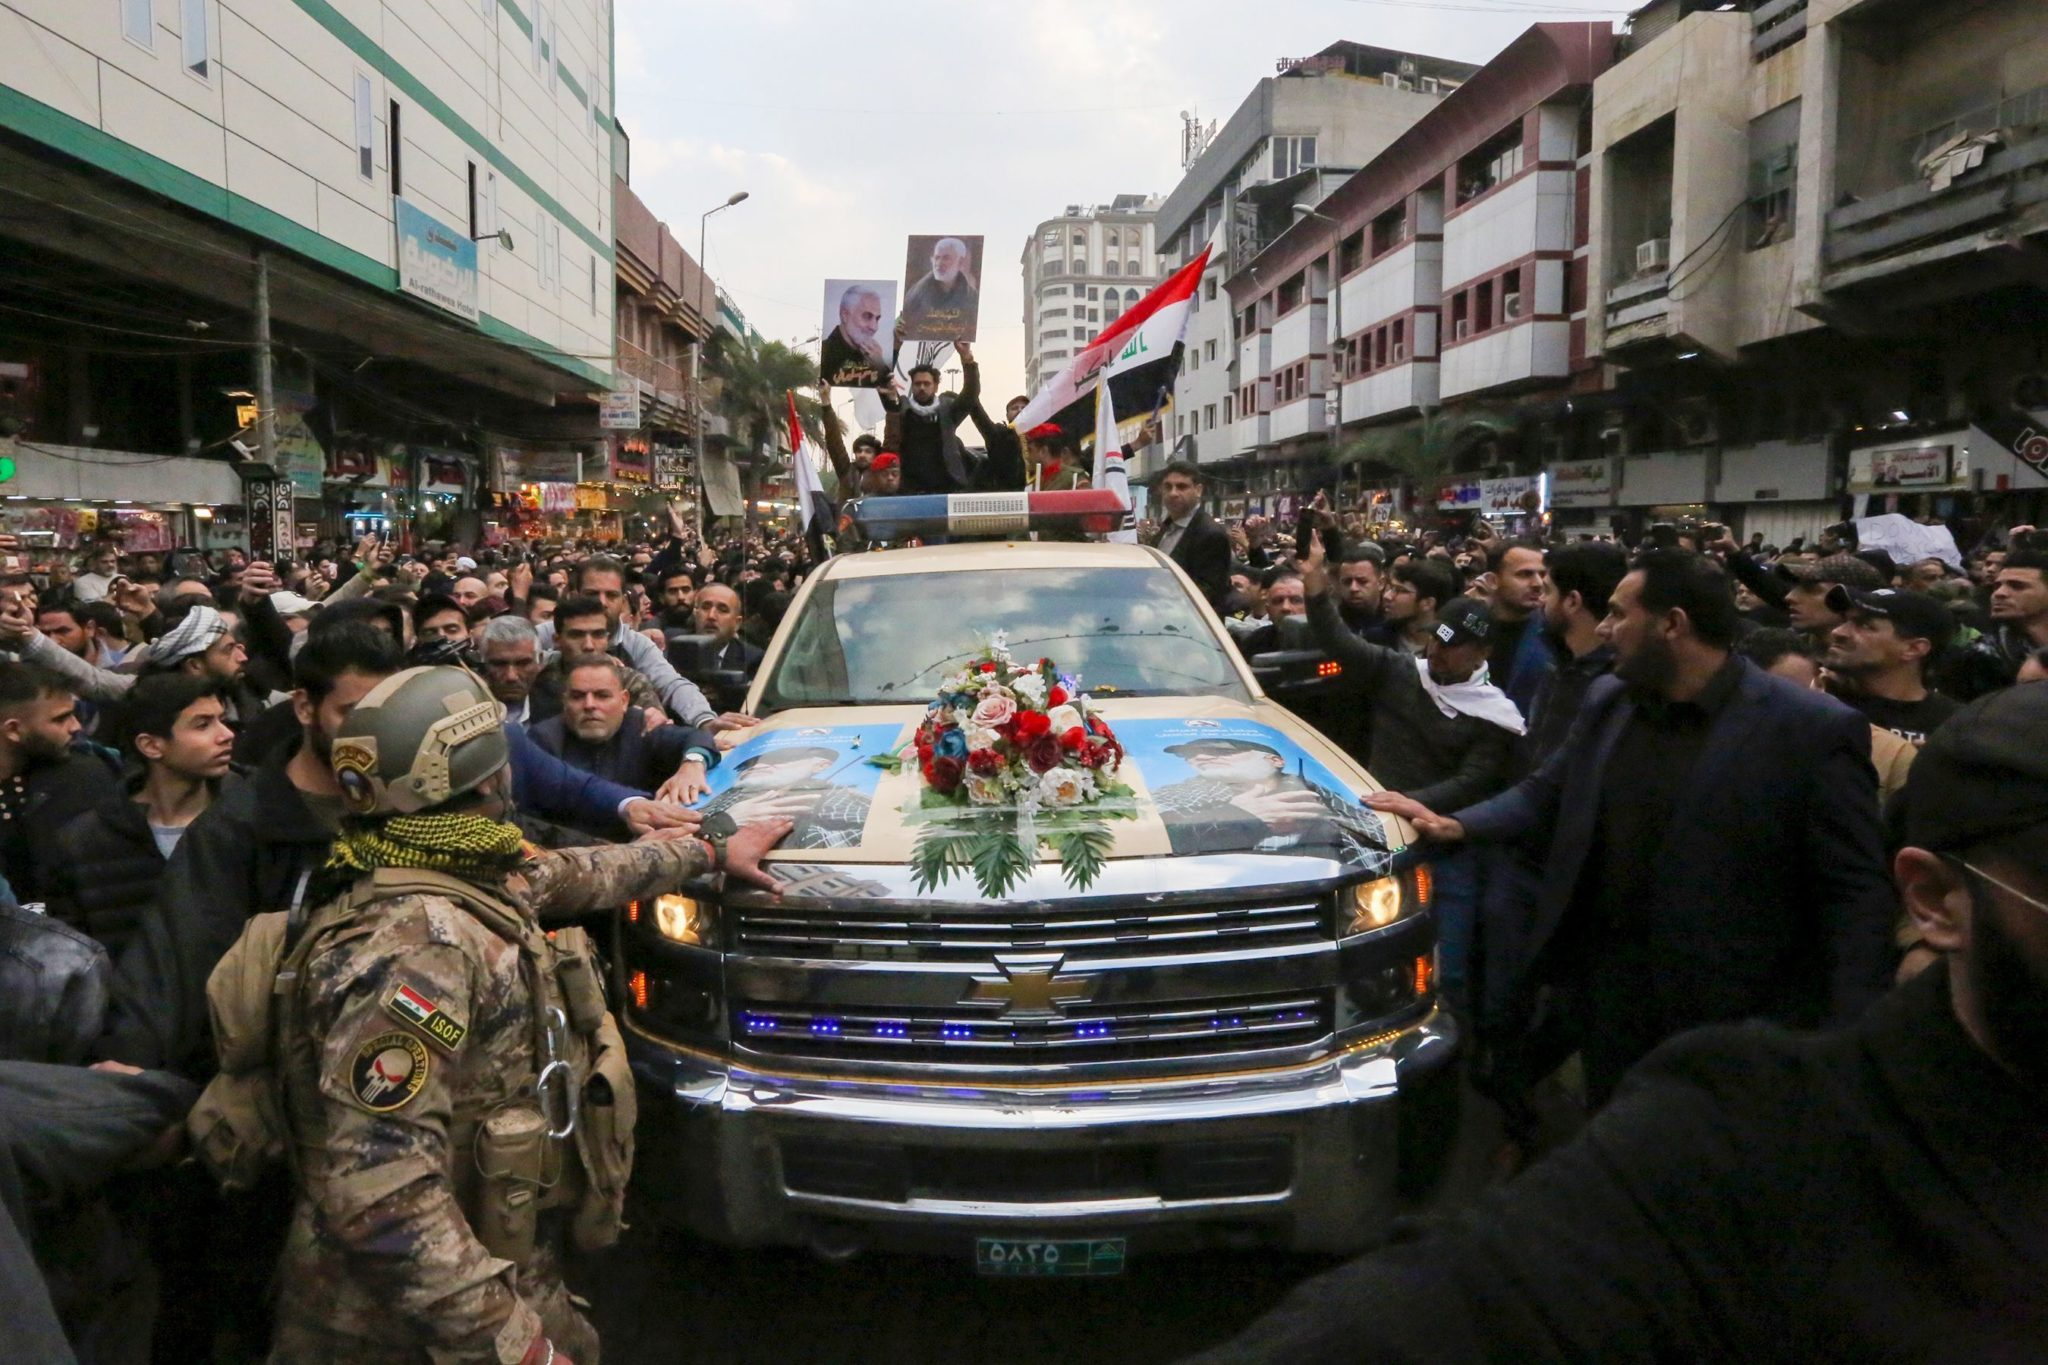 Iraqi leader Abu Mahdi al-Muhandis laid to rest in Najaf